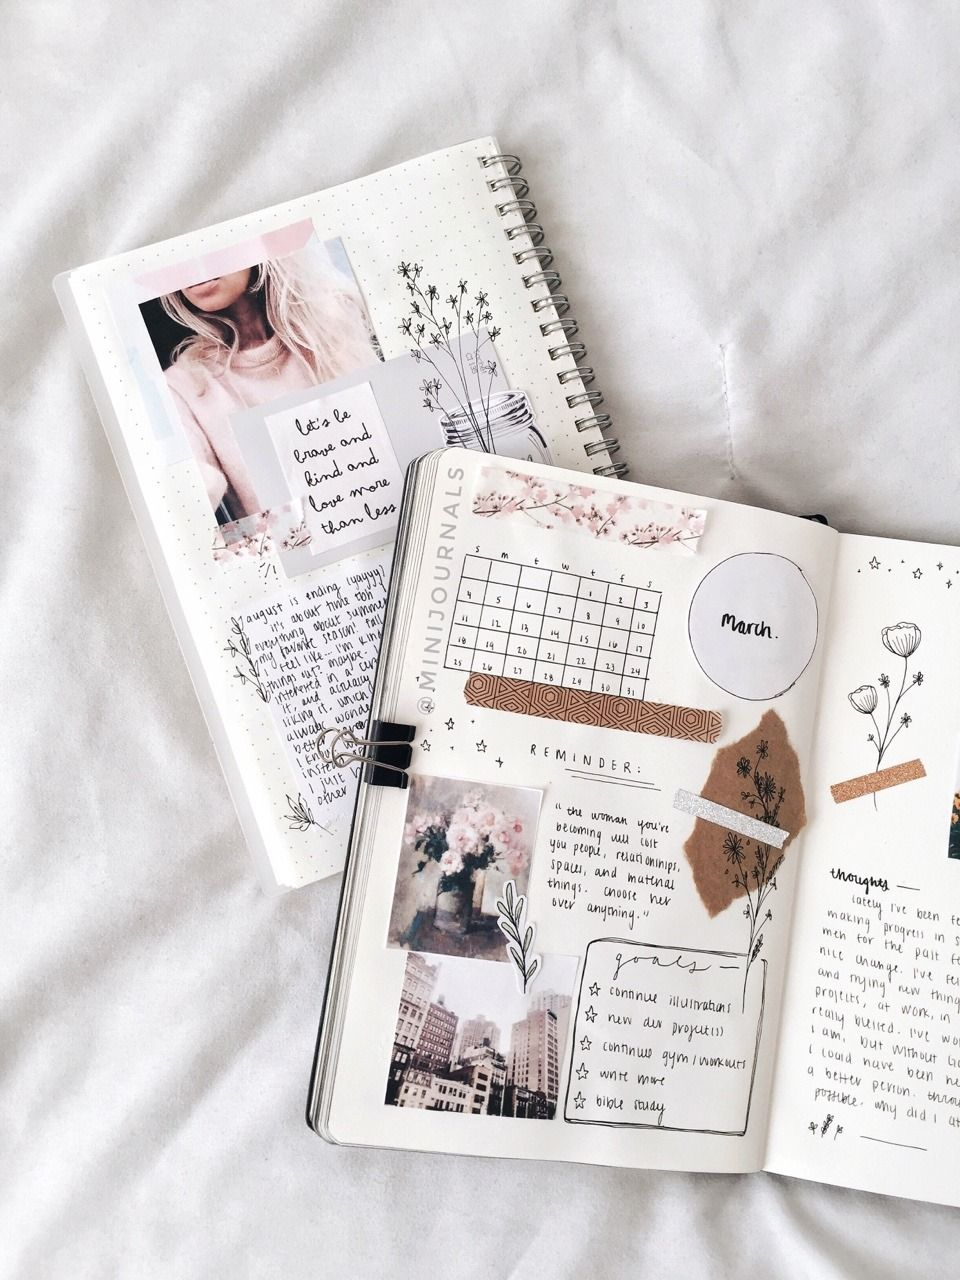 Https Gloomstudy Tumblr Com Post 181570207163 Mini Journals Spring Is Almost Here Bullet Journal Aesthetic Mini Journal Journal Aesthetic